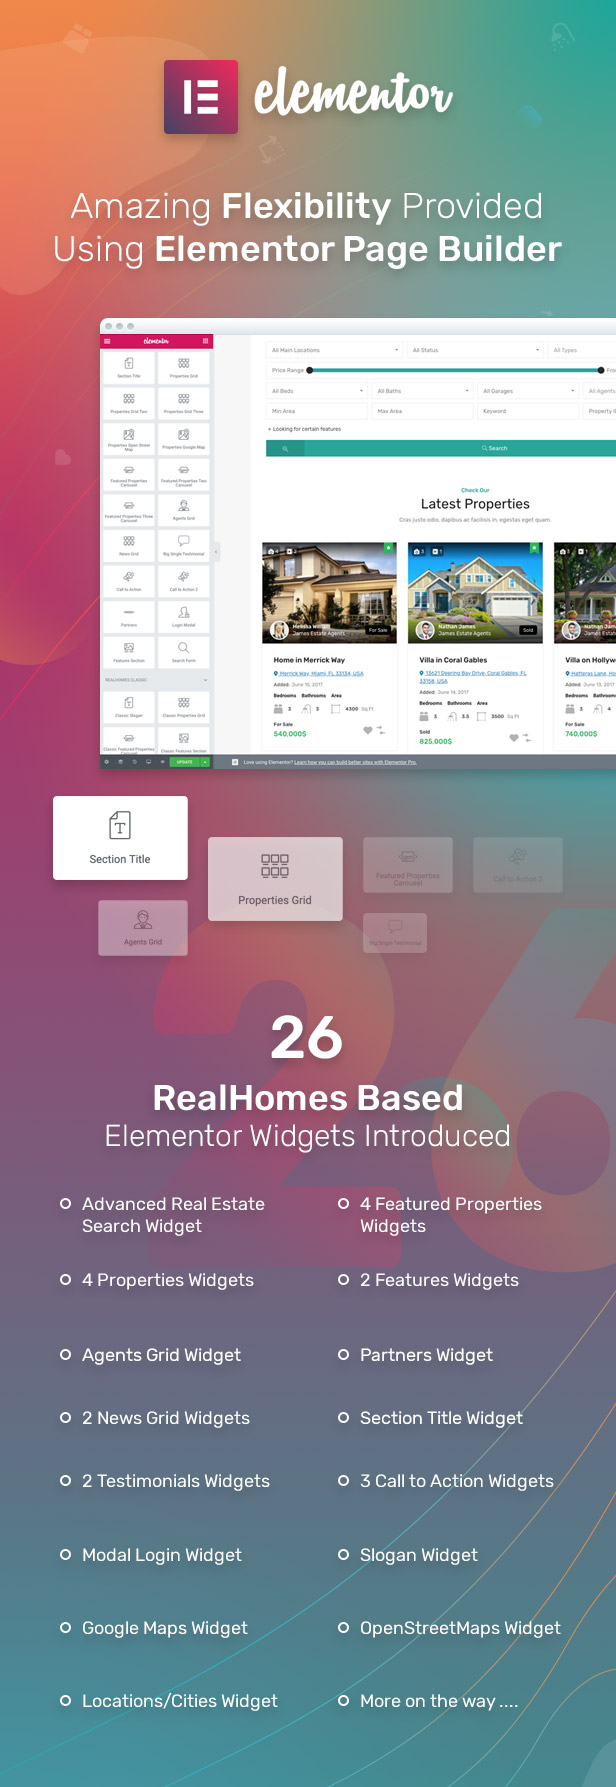 26 Elementor Widgets for RealHomes